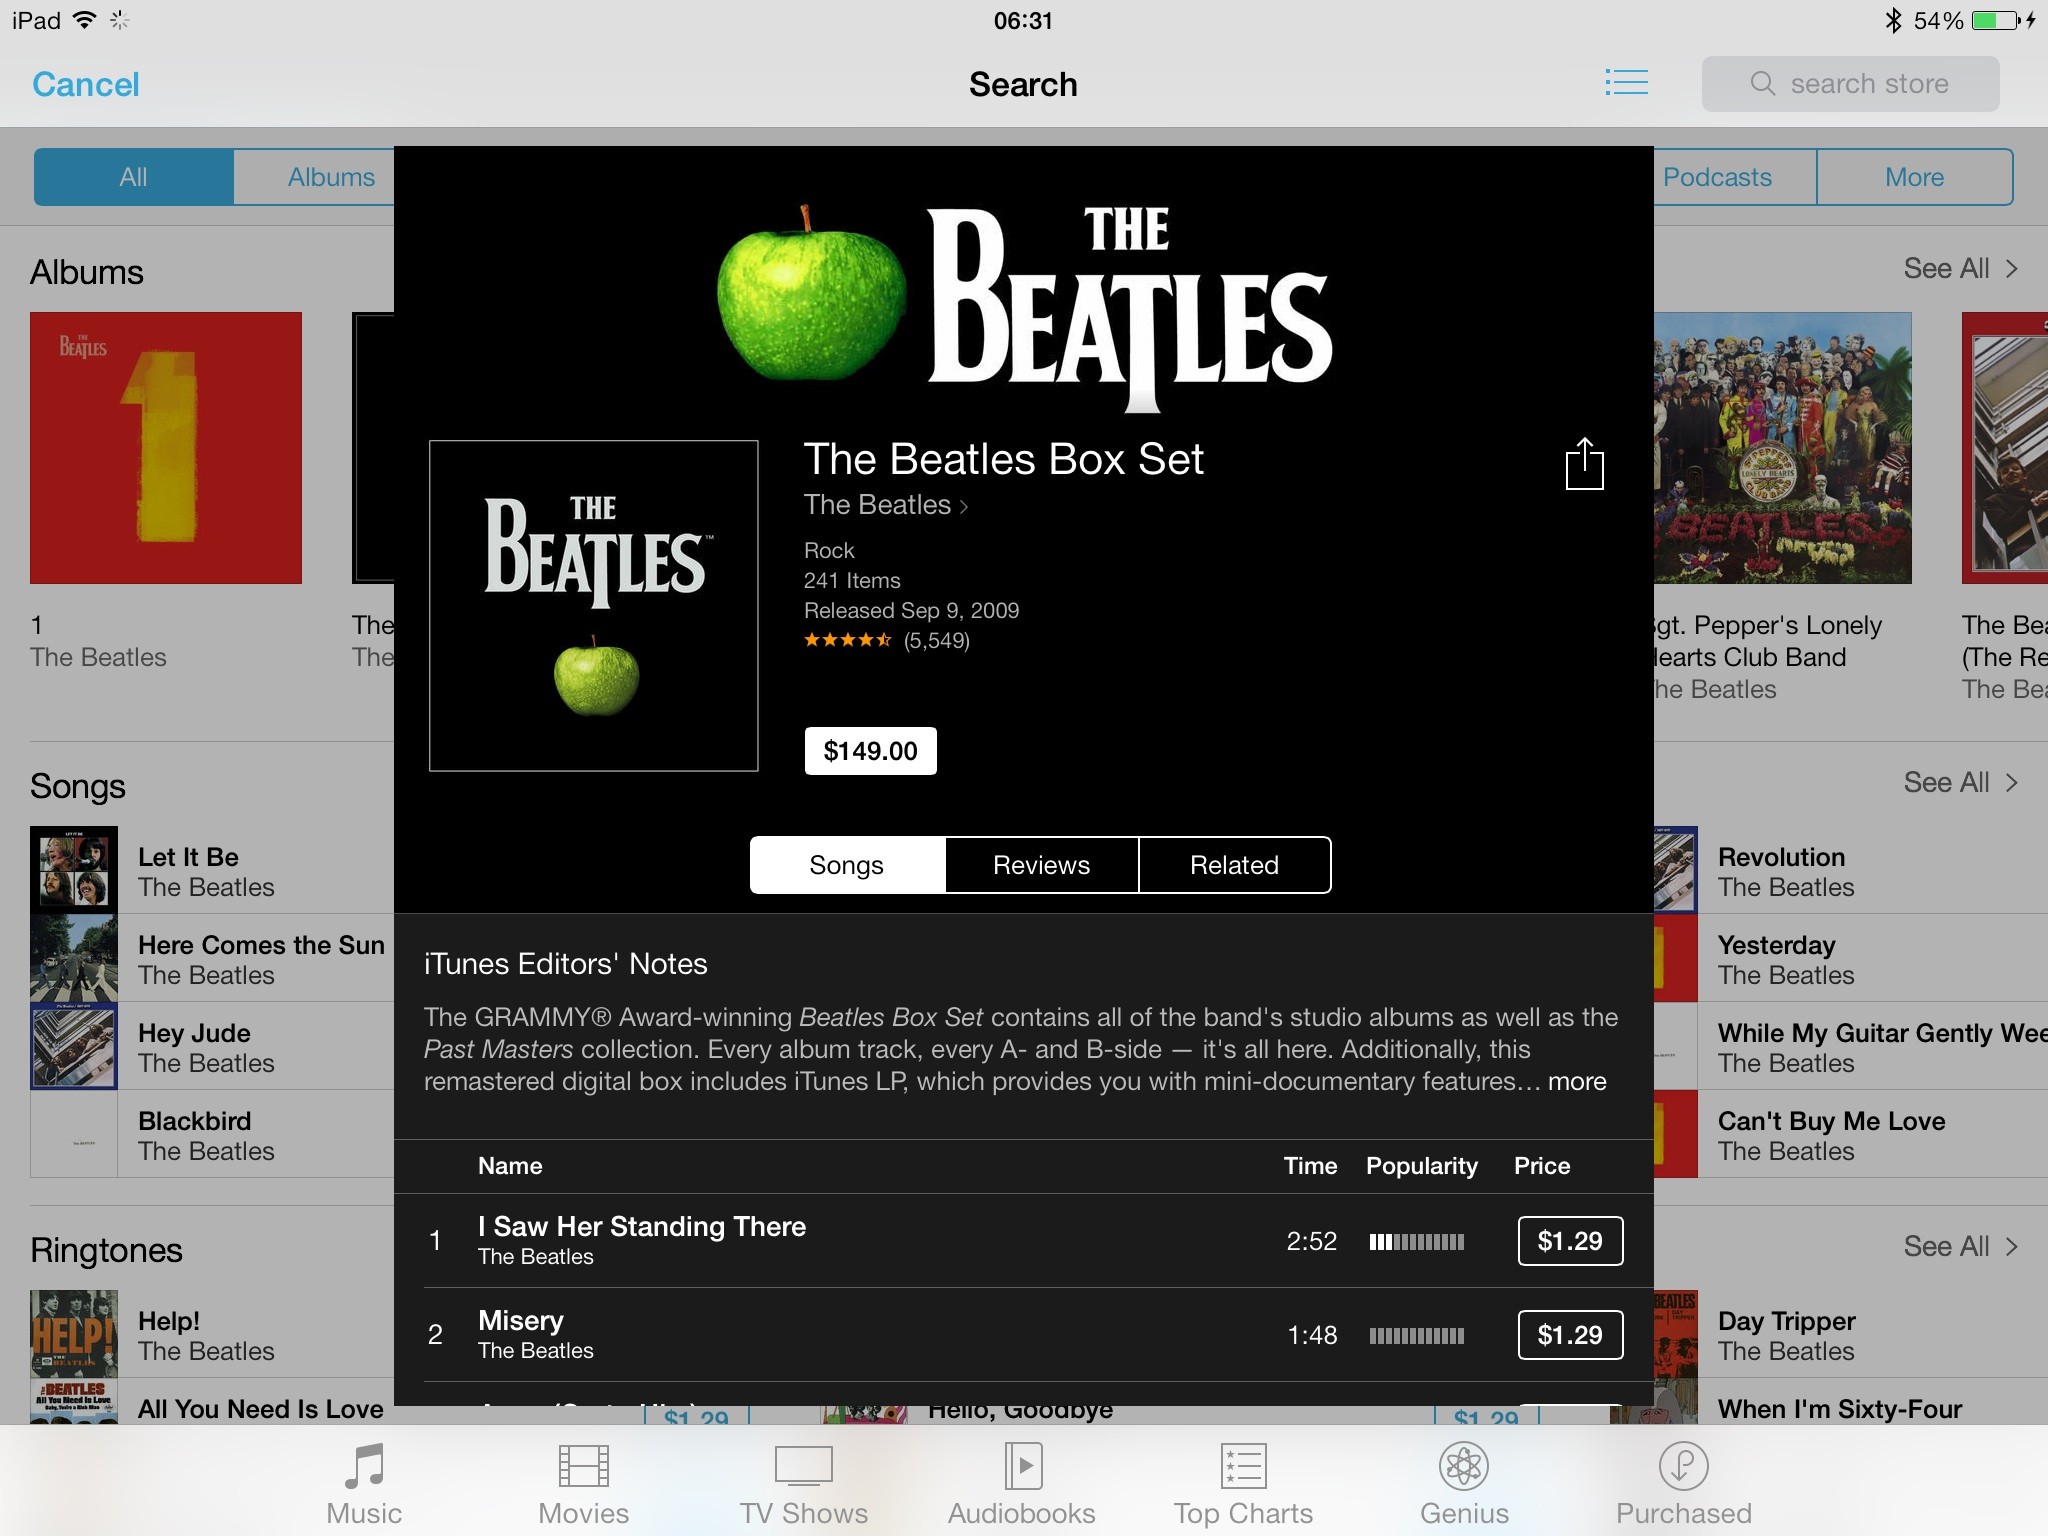 Rare Bootlegs From The Beatles Expected To Launch Exclusively Through iTunes